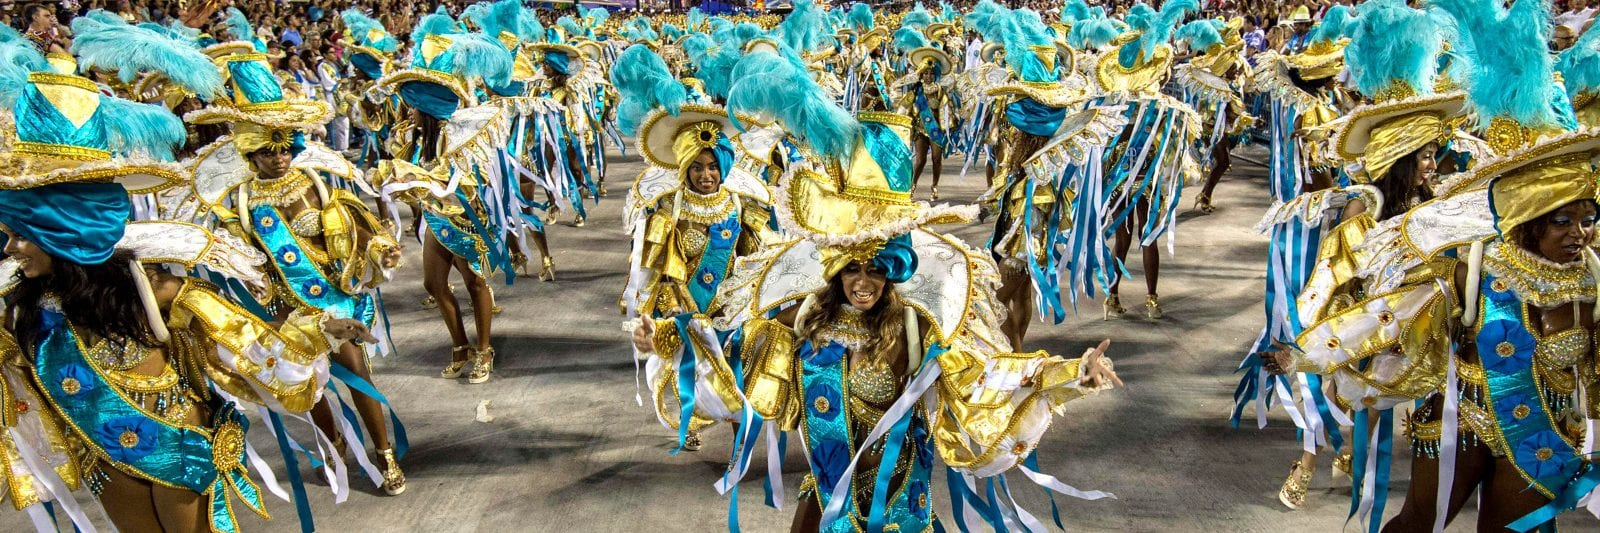 Best Annual Events Carnival Rio Brazil